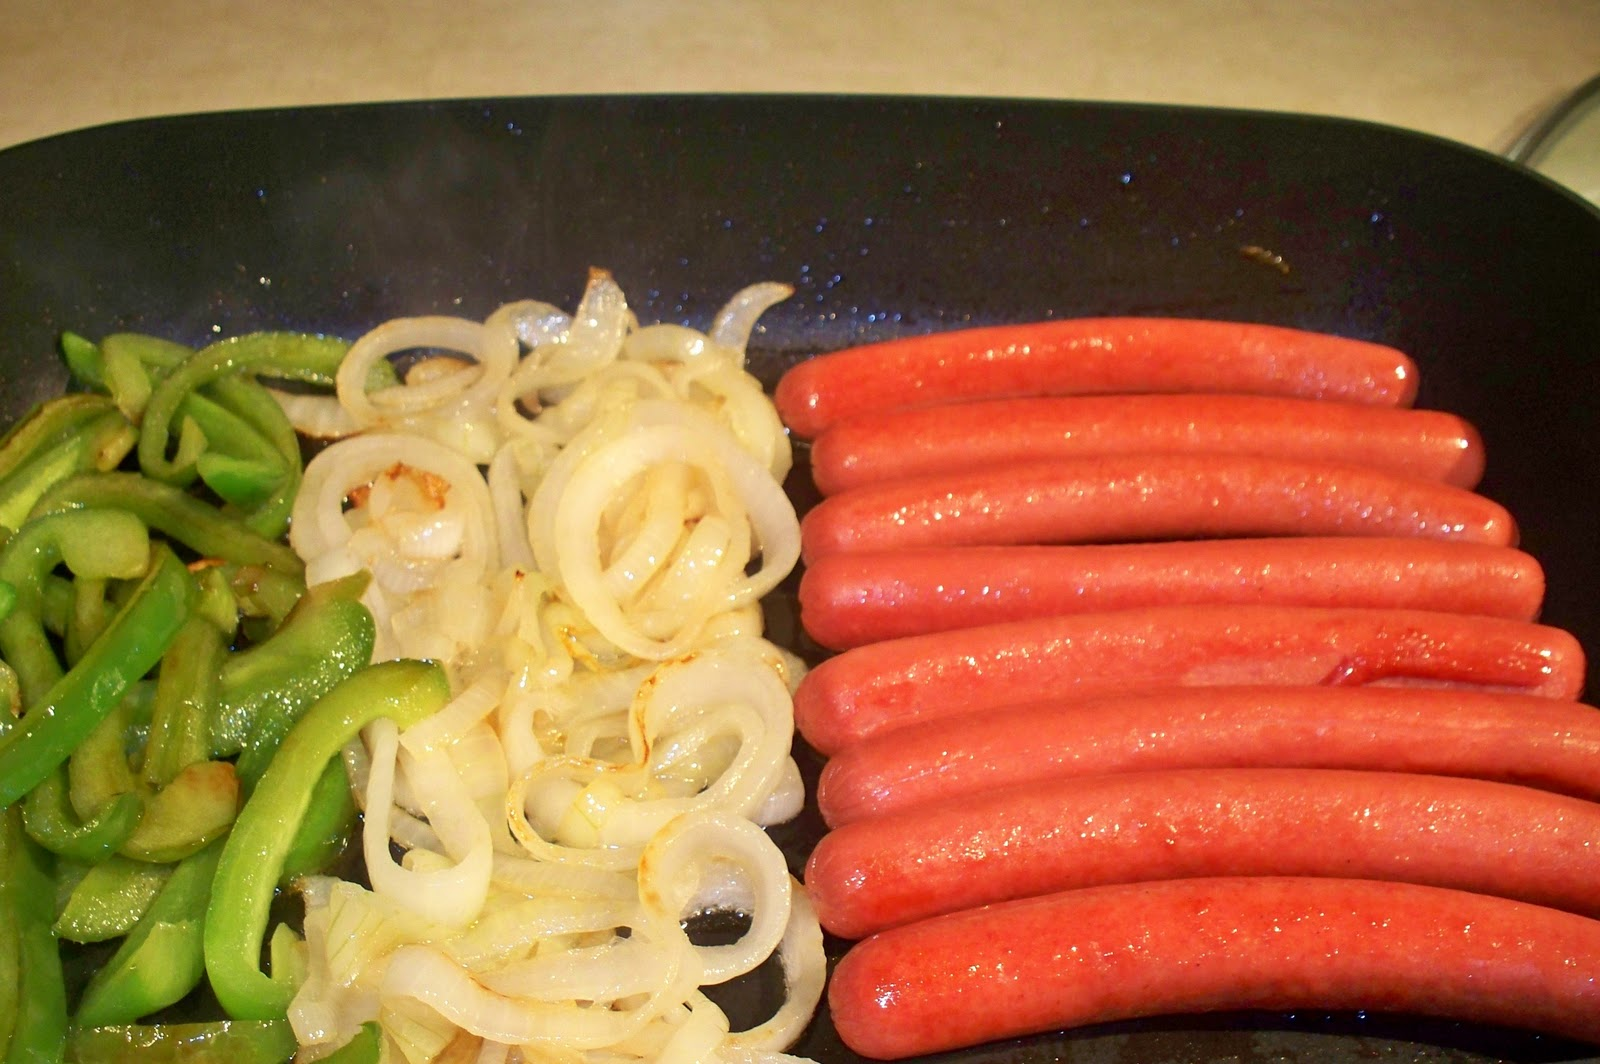 onions on hotdogs